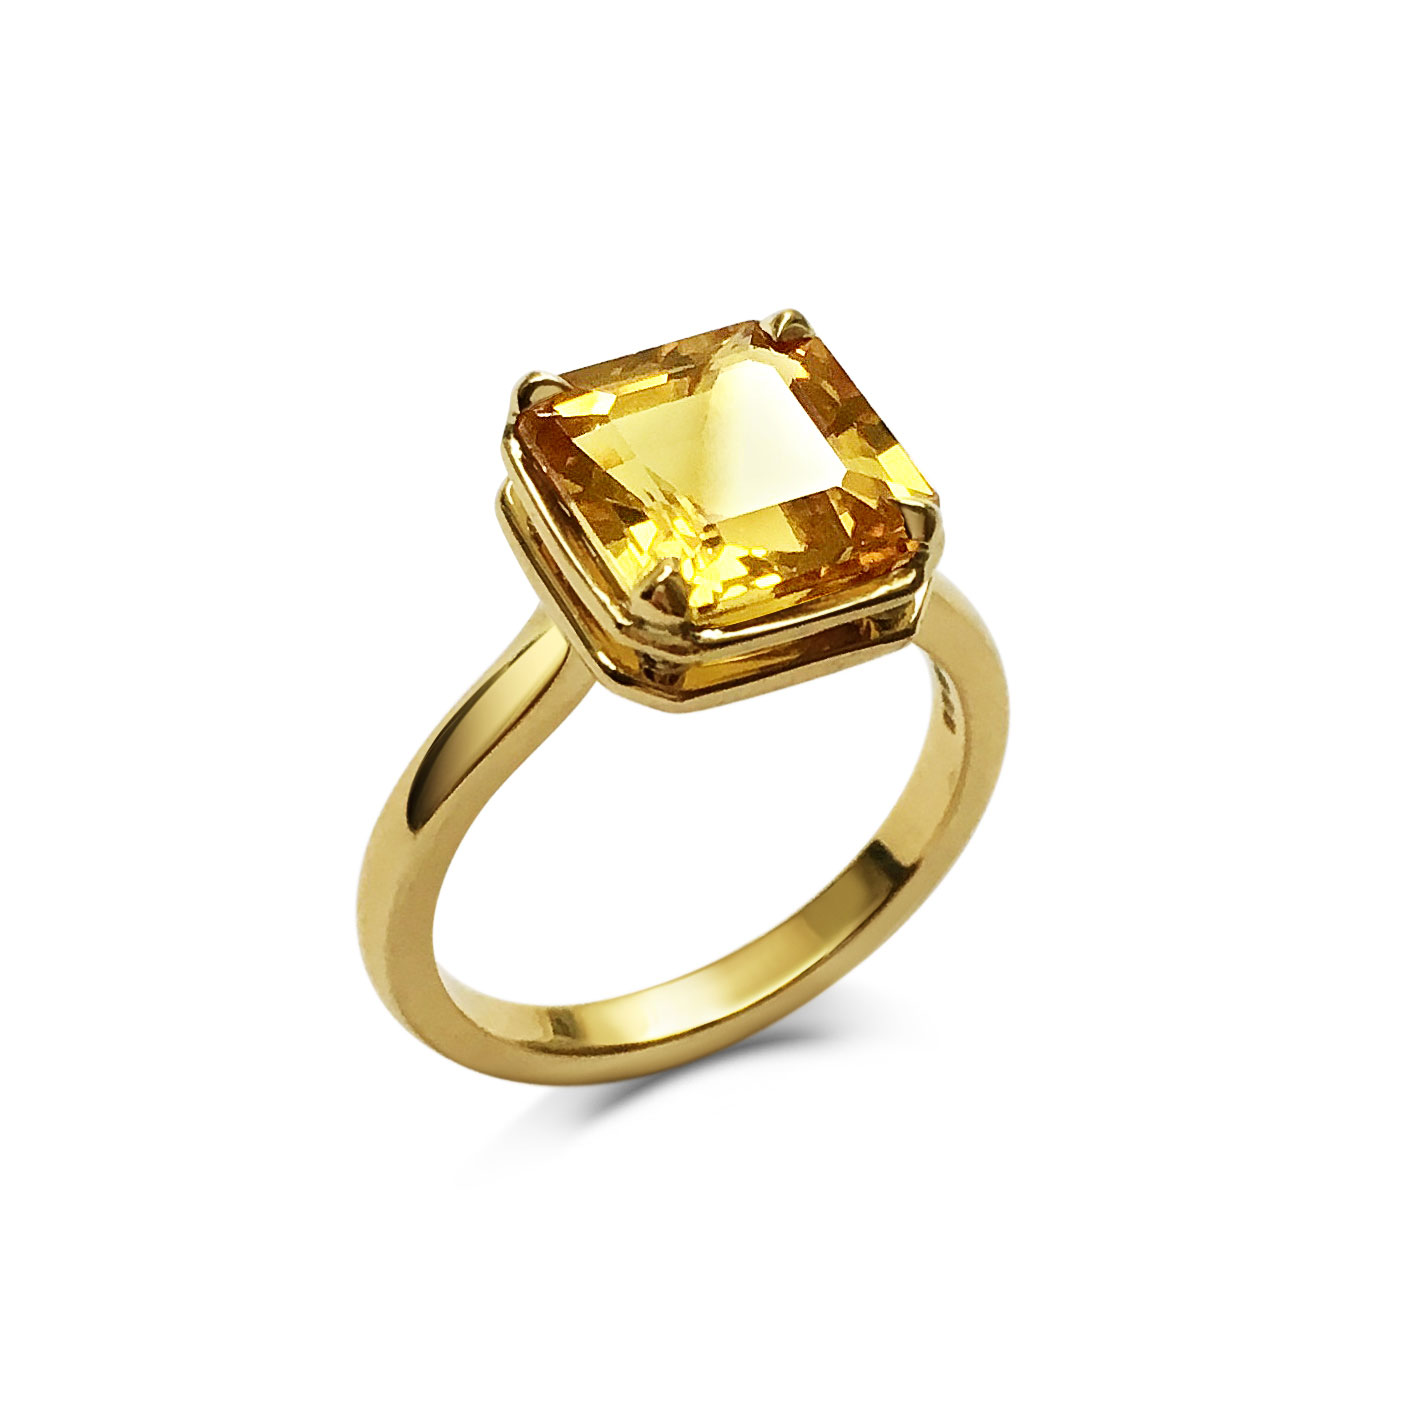 Square-cut yellow sapphire ring mounted in 18ct yellow gold